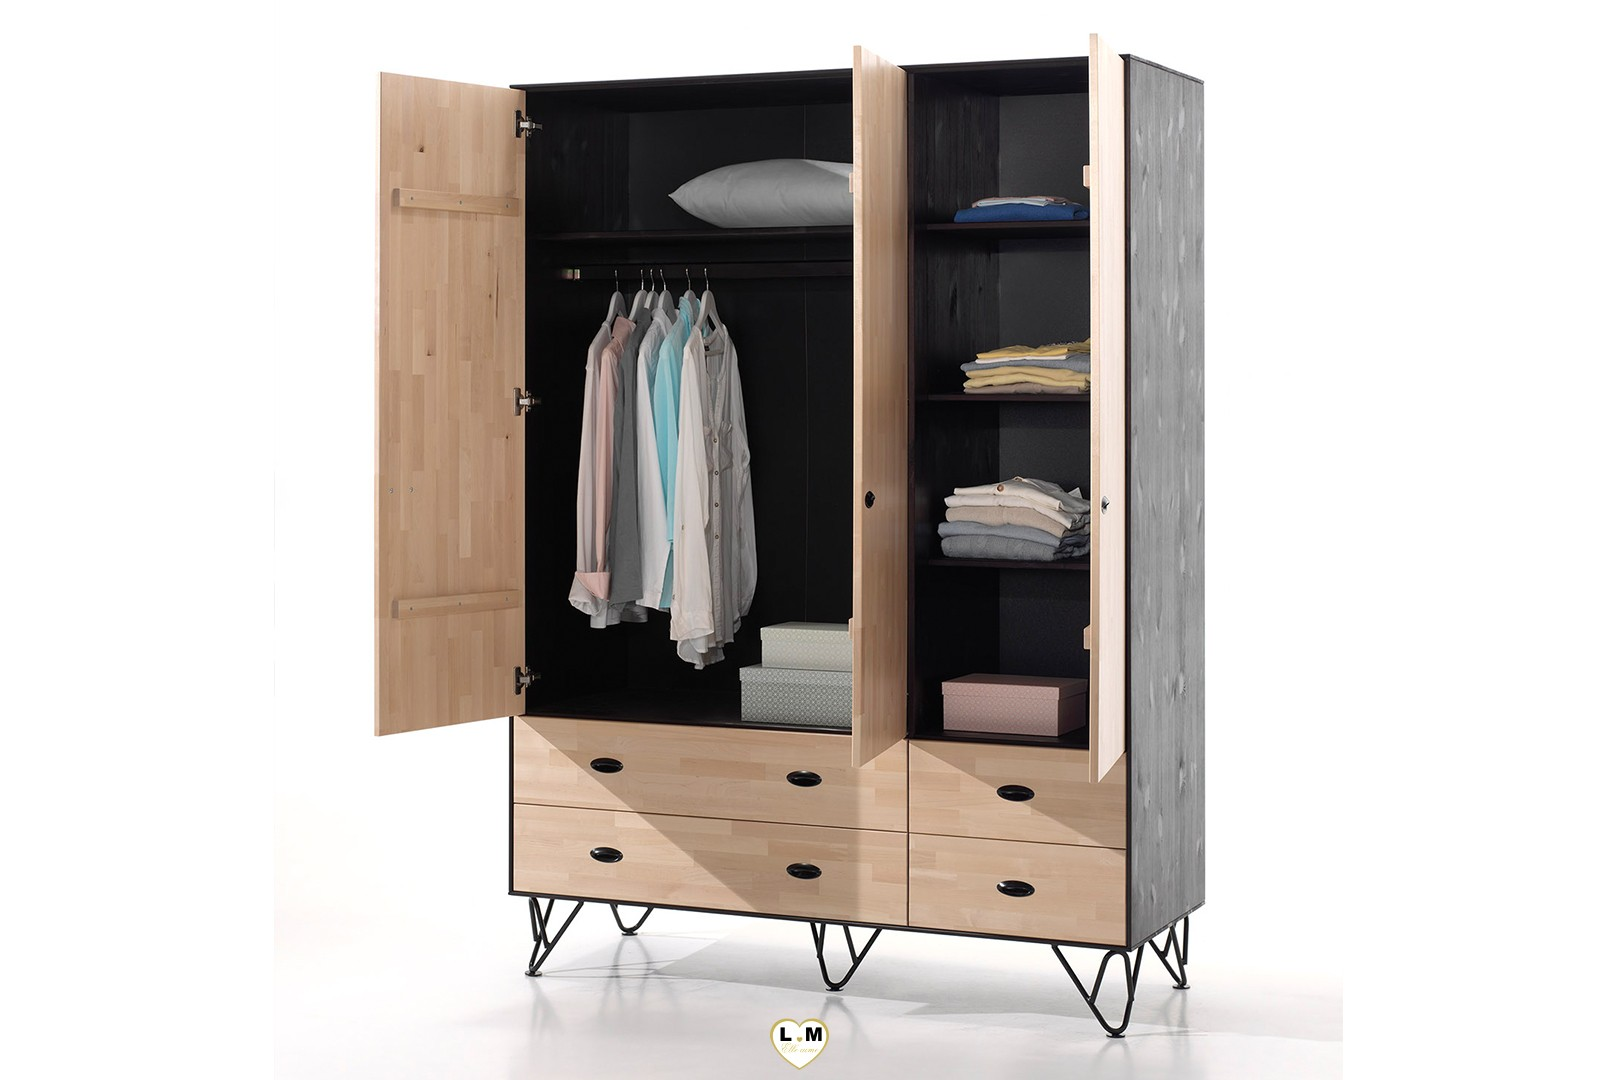 armoire metallique chambre gallery of astuce de rangement chambre beau de armoire metallique. Black Bedroom Furniture Sets. Home Design Ideas